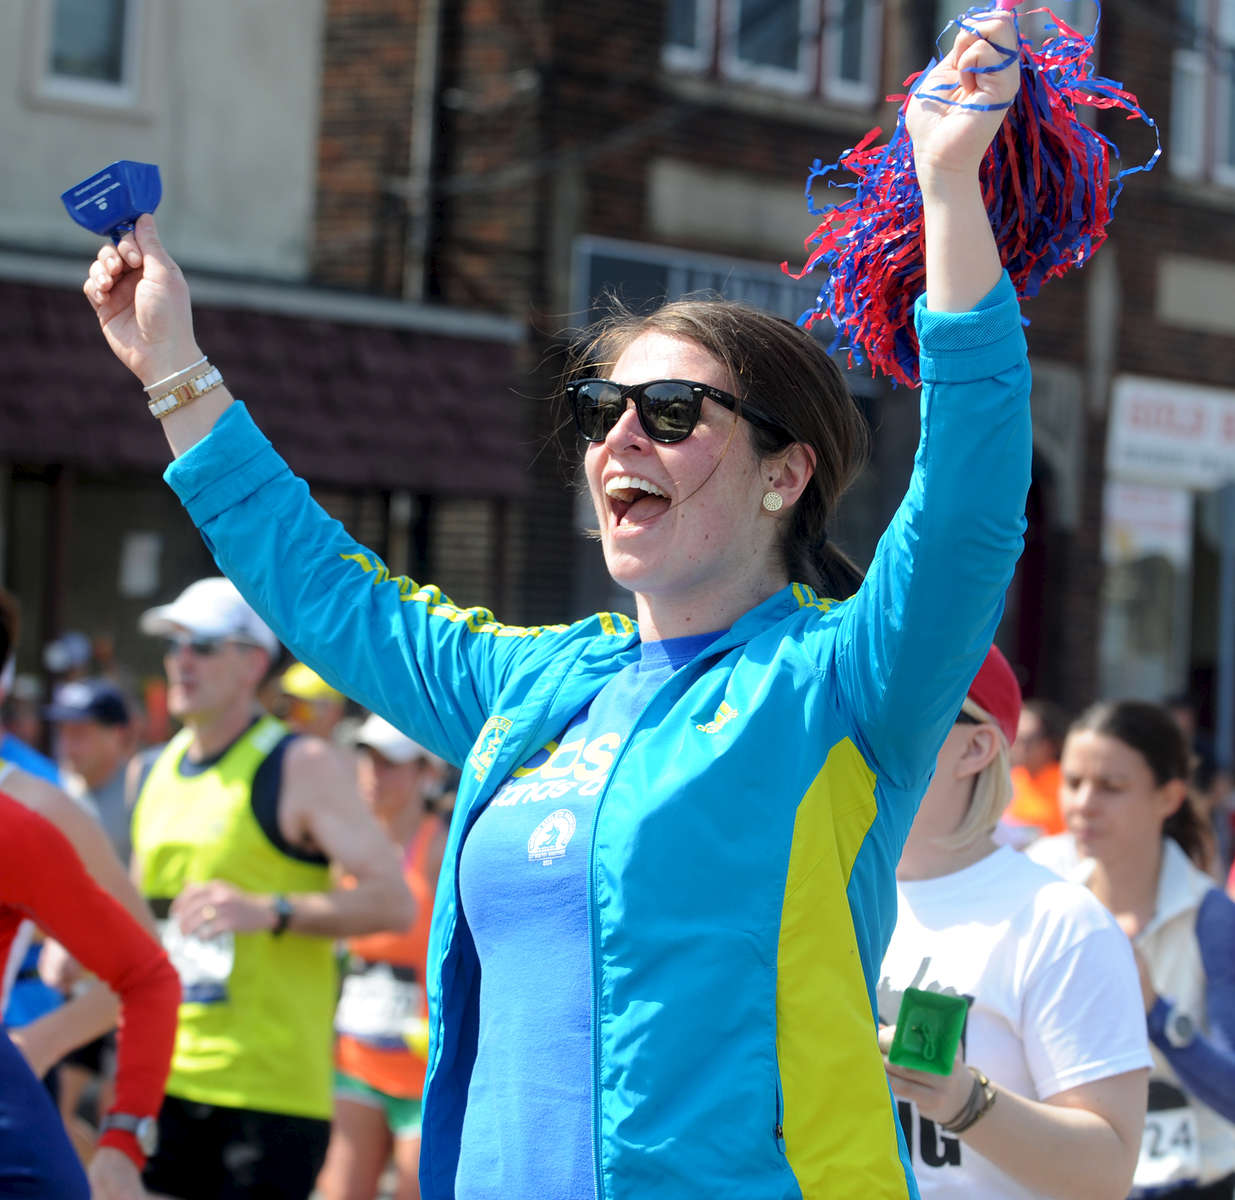 4/18/16-- FRAMINGHAM-- Annie Huppert of Cambridge cheers on runner Cristina Lowry, the sister of an old roommate, in  downtown Framingham Marathon Monday.Daily News and Wicked Local Staff Photo/Art Illman